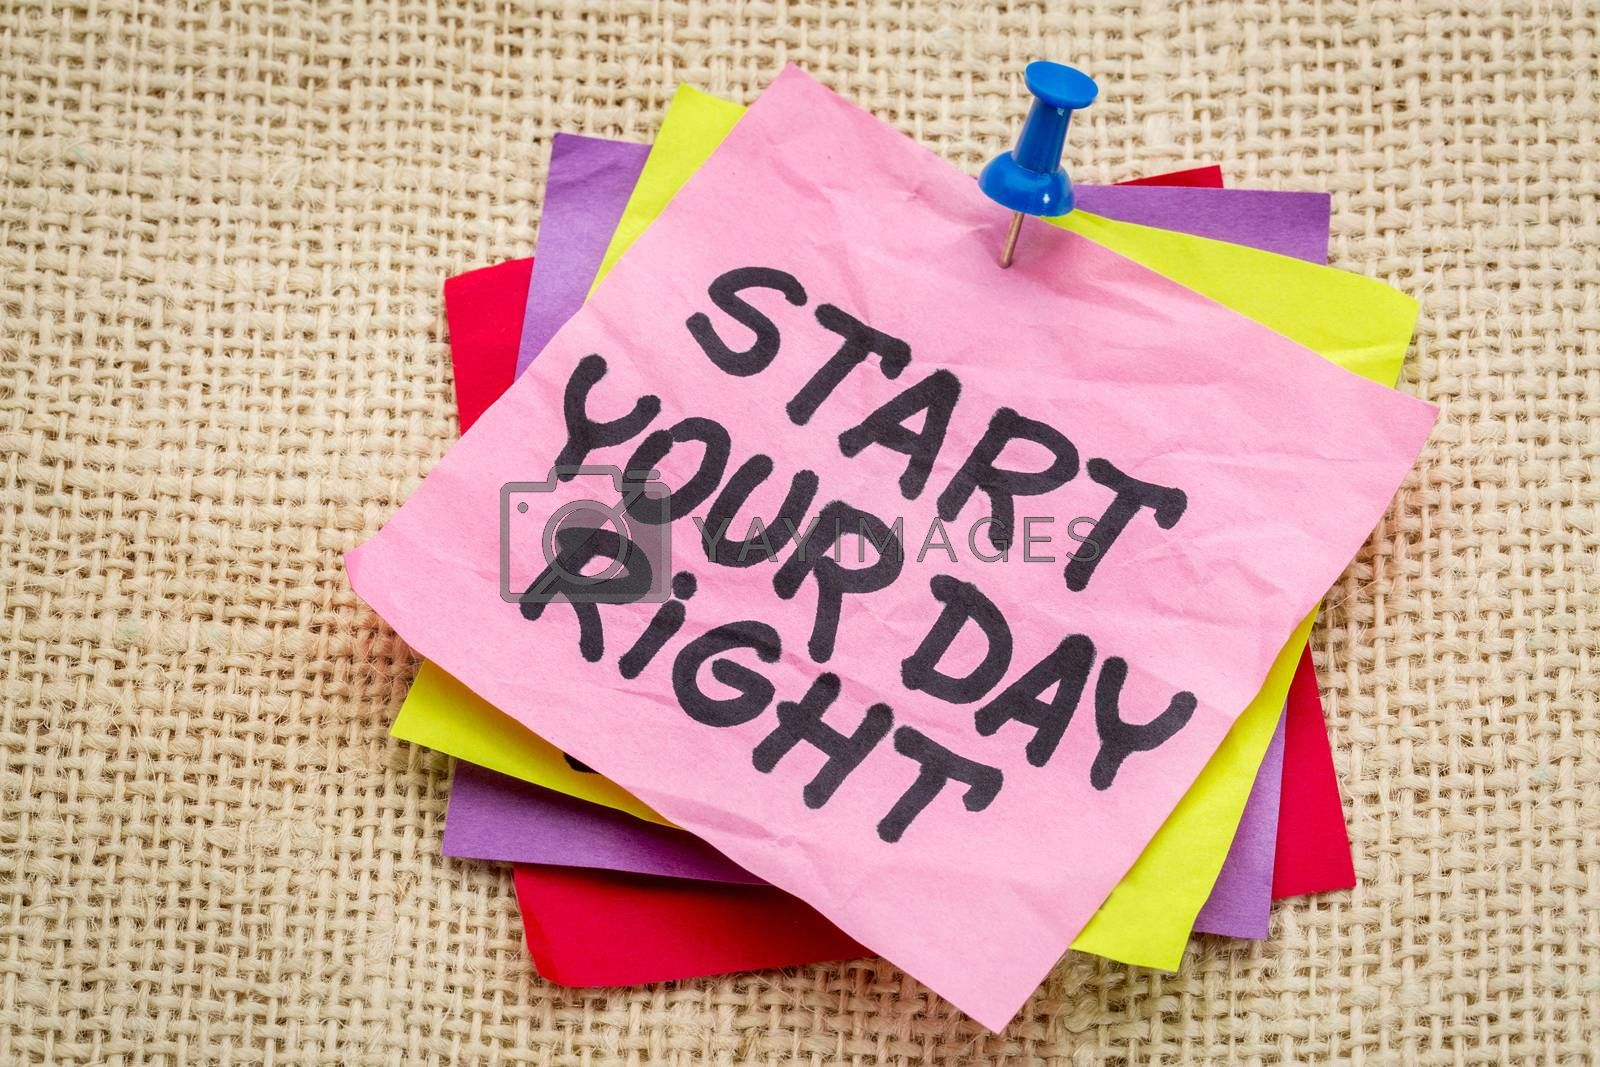 Start your day right reminder - motivational handwriting on a sticky note against burlap canvas